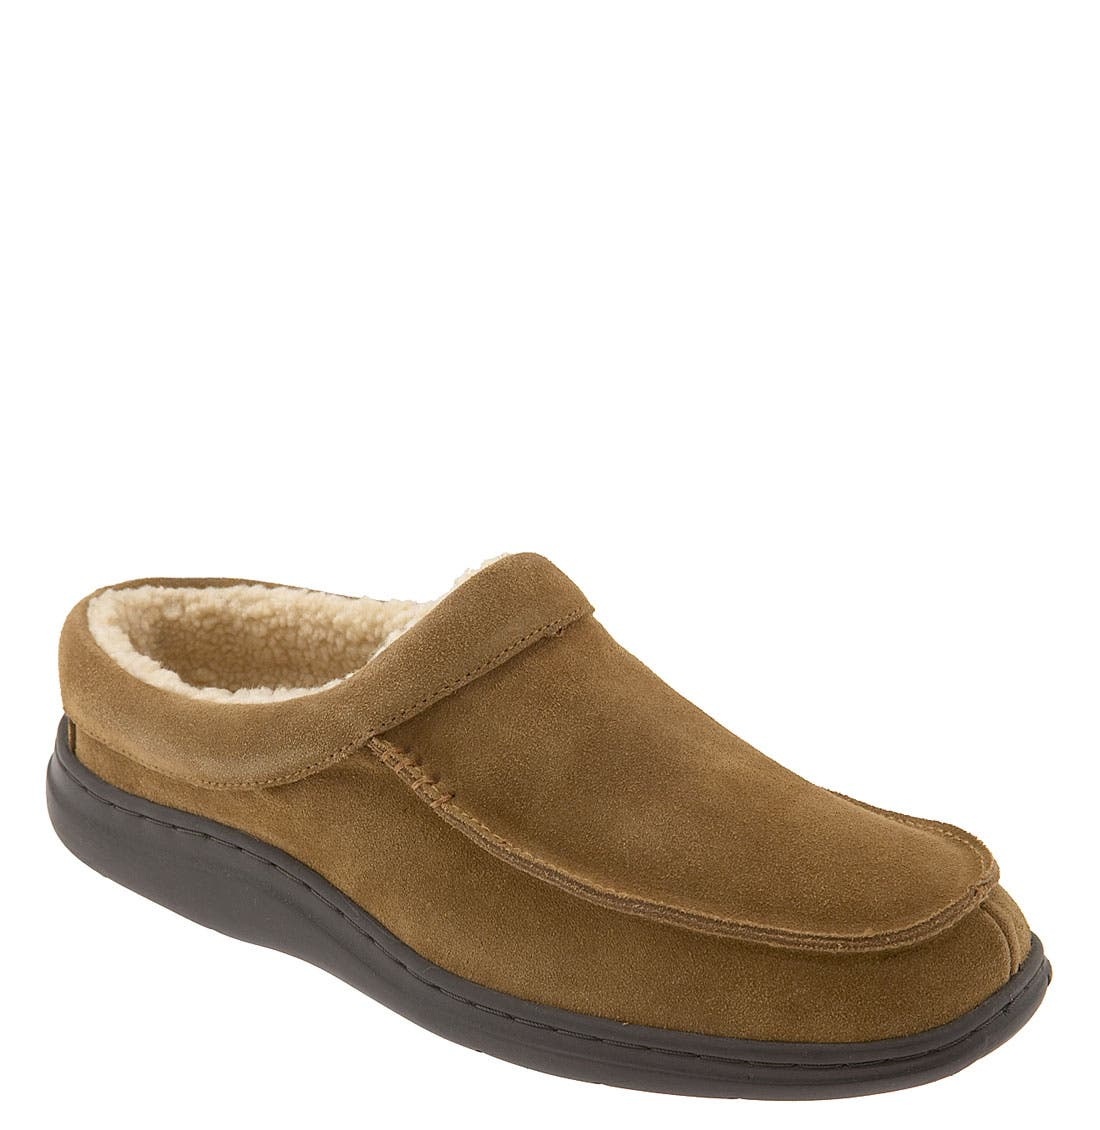 'Edmonton' Slipper,                             Main thumbnail 1, color,                             TAN